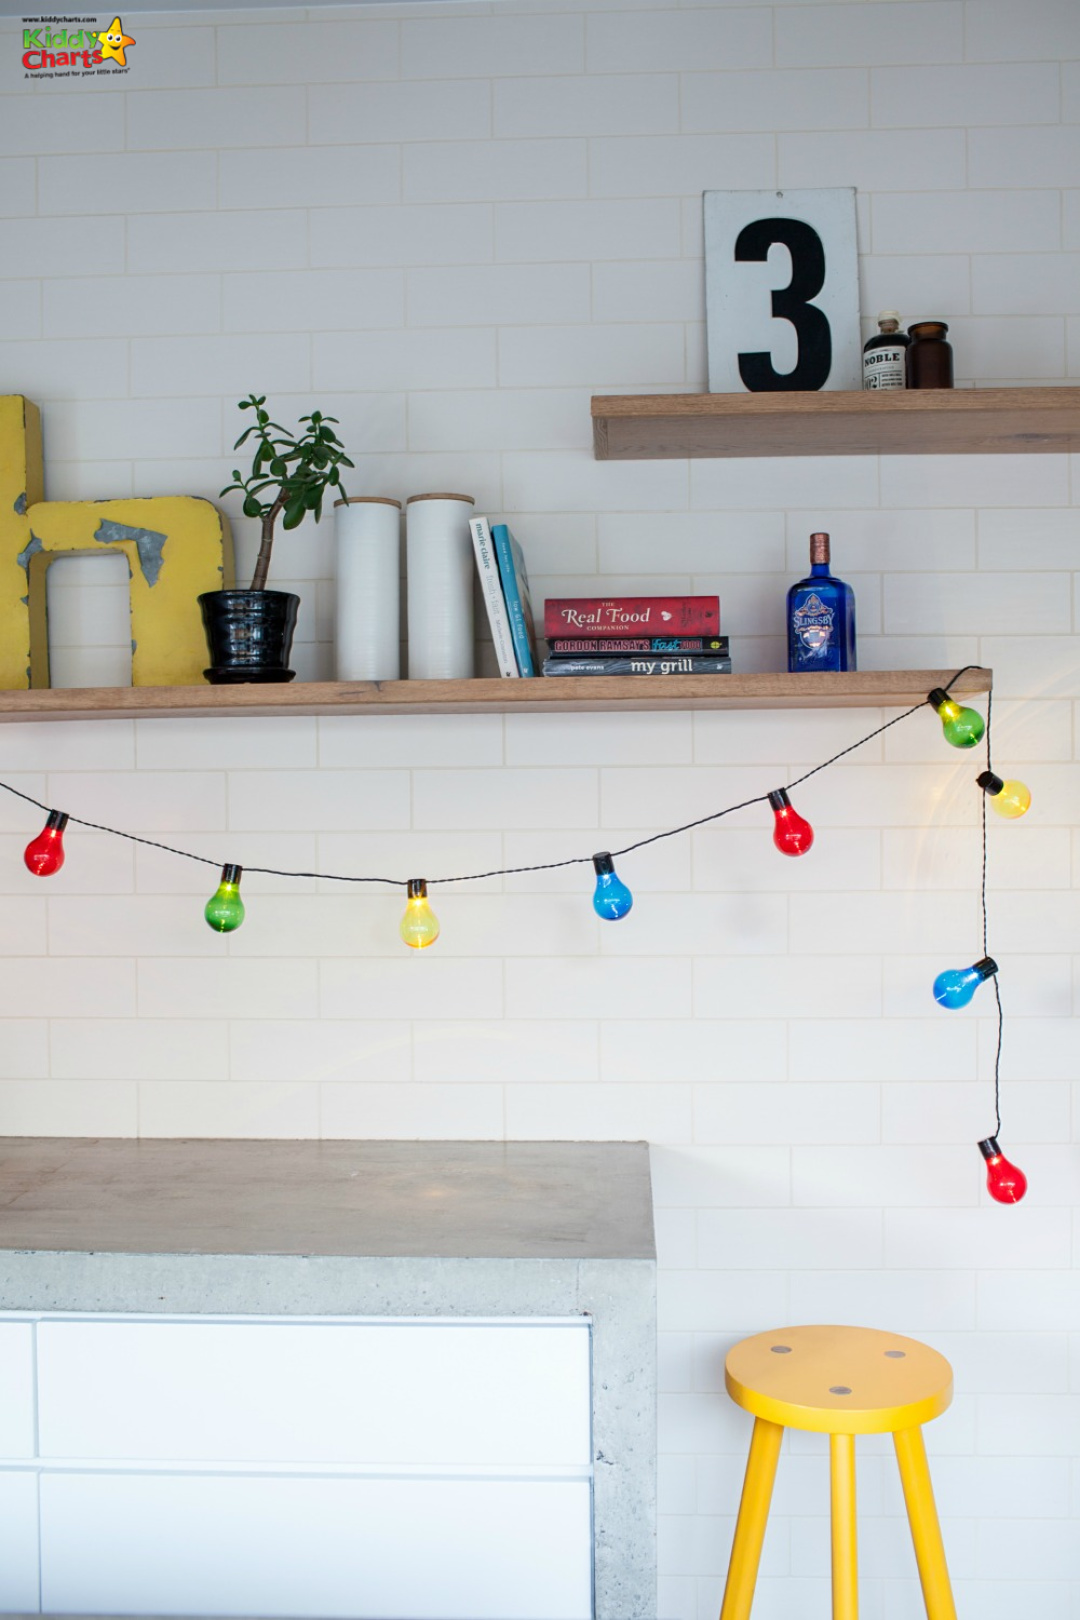 We've got some great kids bedroom ideas for you to get kids imaginations run wild in your house! #kidsbedrooms #lights #fairylights #kids #bedrooms